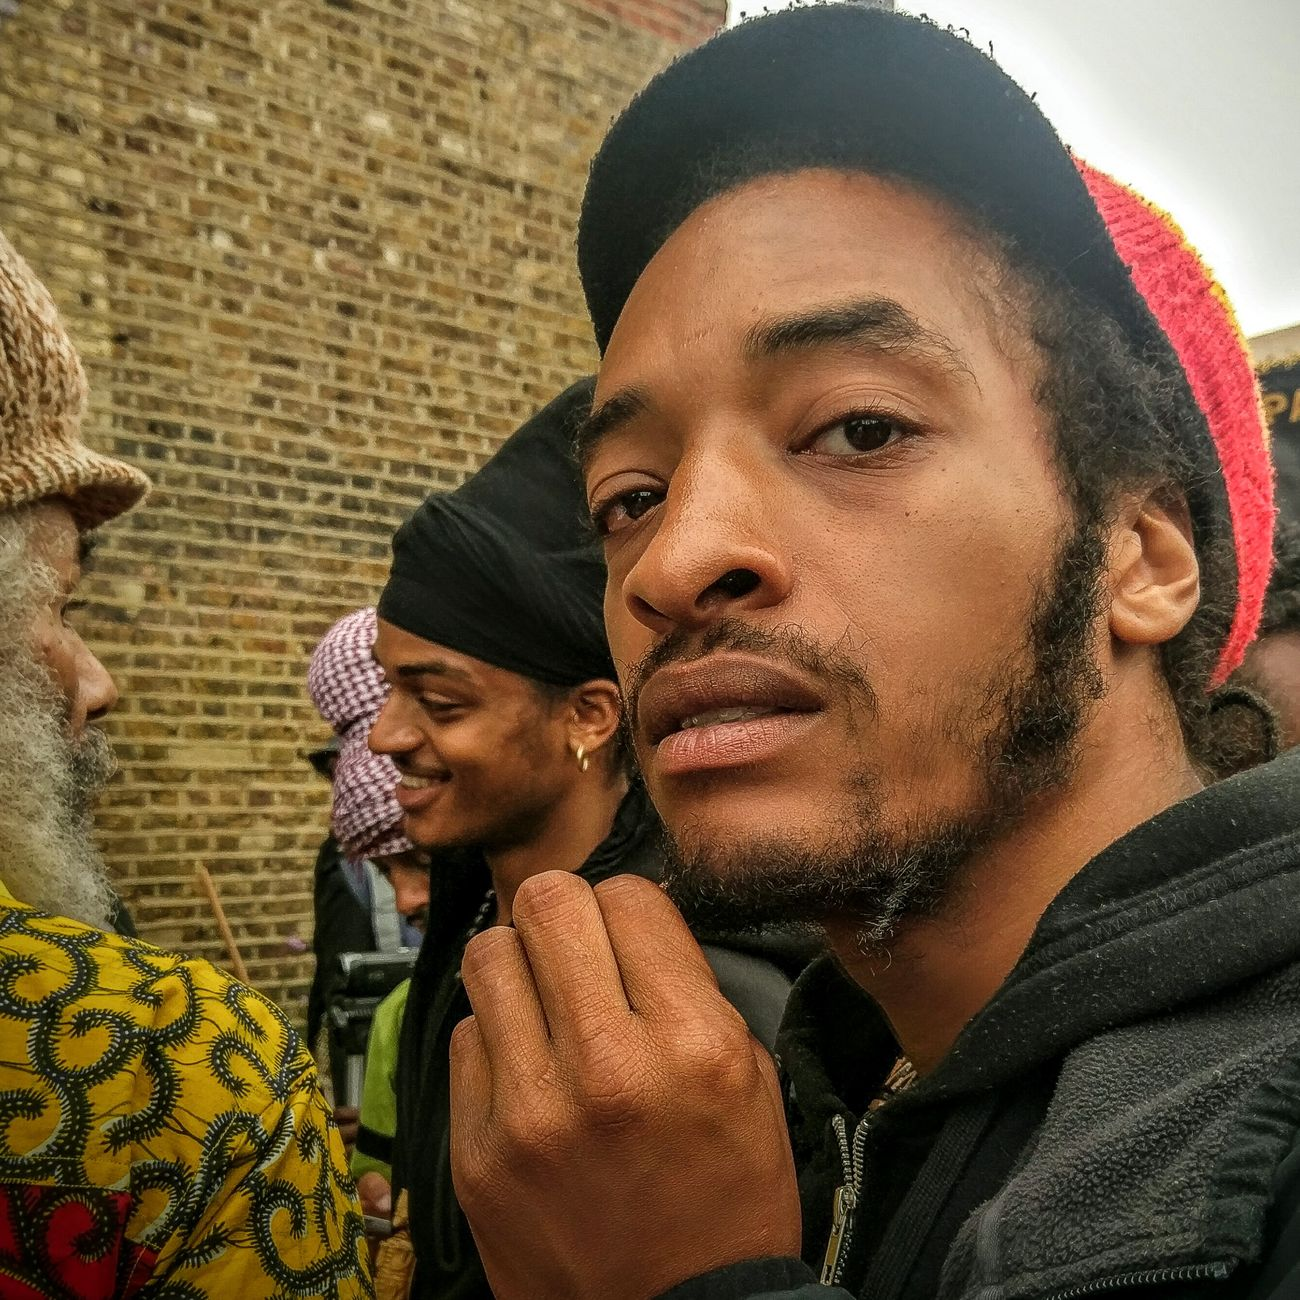 Headshot Togetherness Close-up Urban Beauty People Cultures Group Of People Outdoors Love Men Smiling Street Streetphotography City Portrait Melanin Portraits Human Face RASTA Locs Headwrap  Hat Young Adult Senior Adult